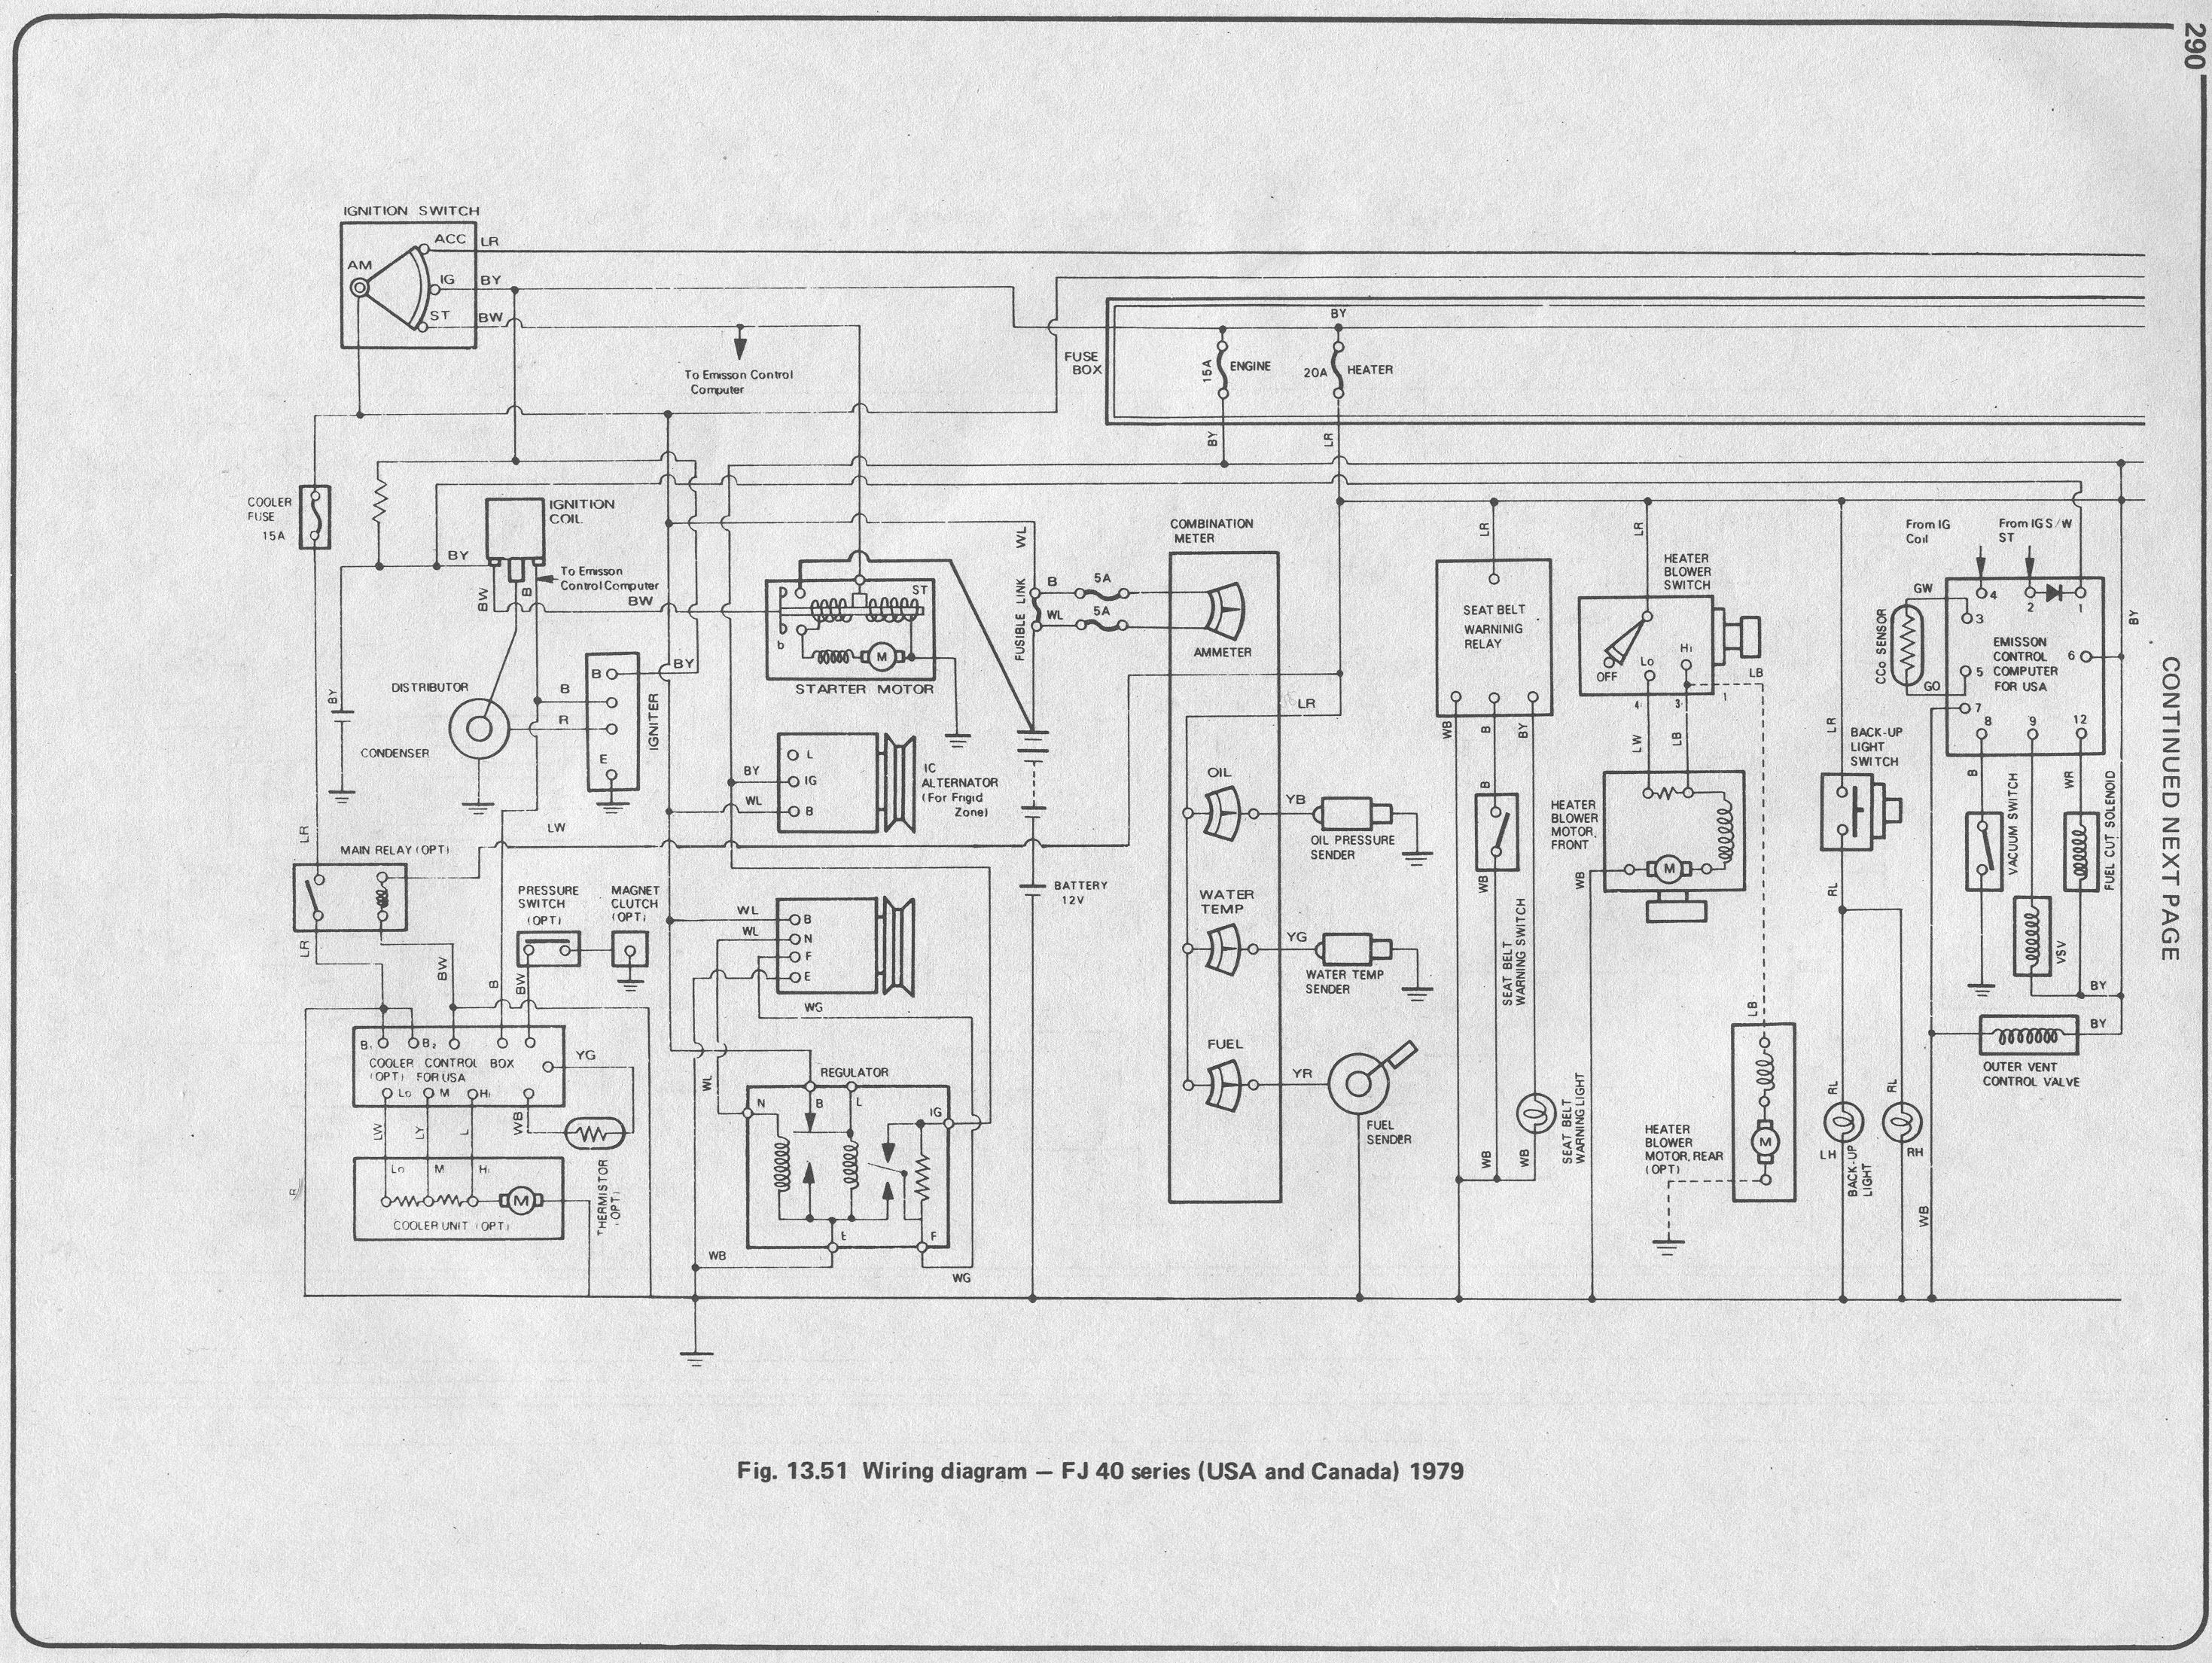 Fj40 Wiring Diagram: Fj ignition switch wiring diagram get